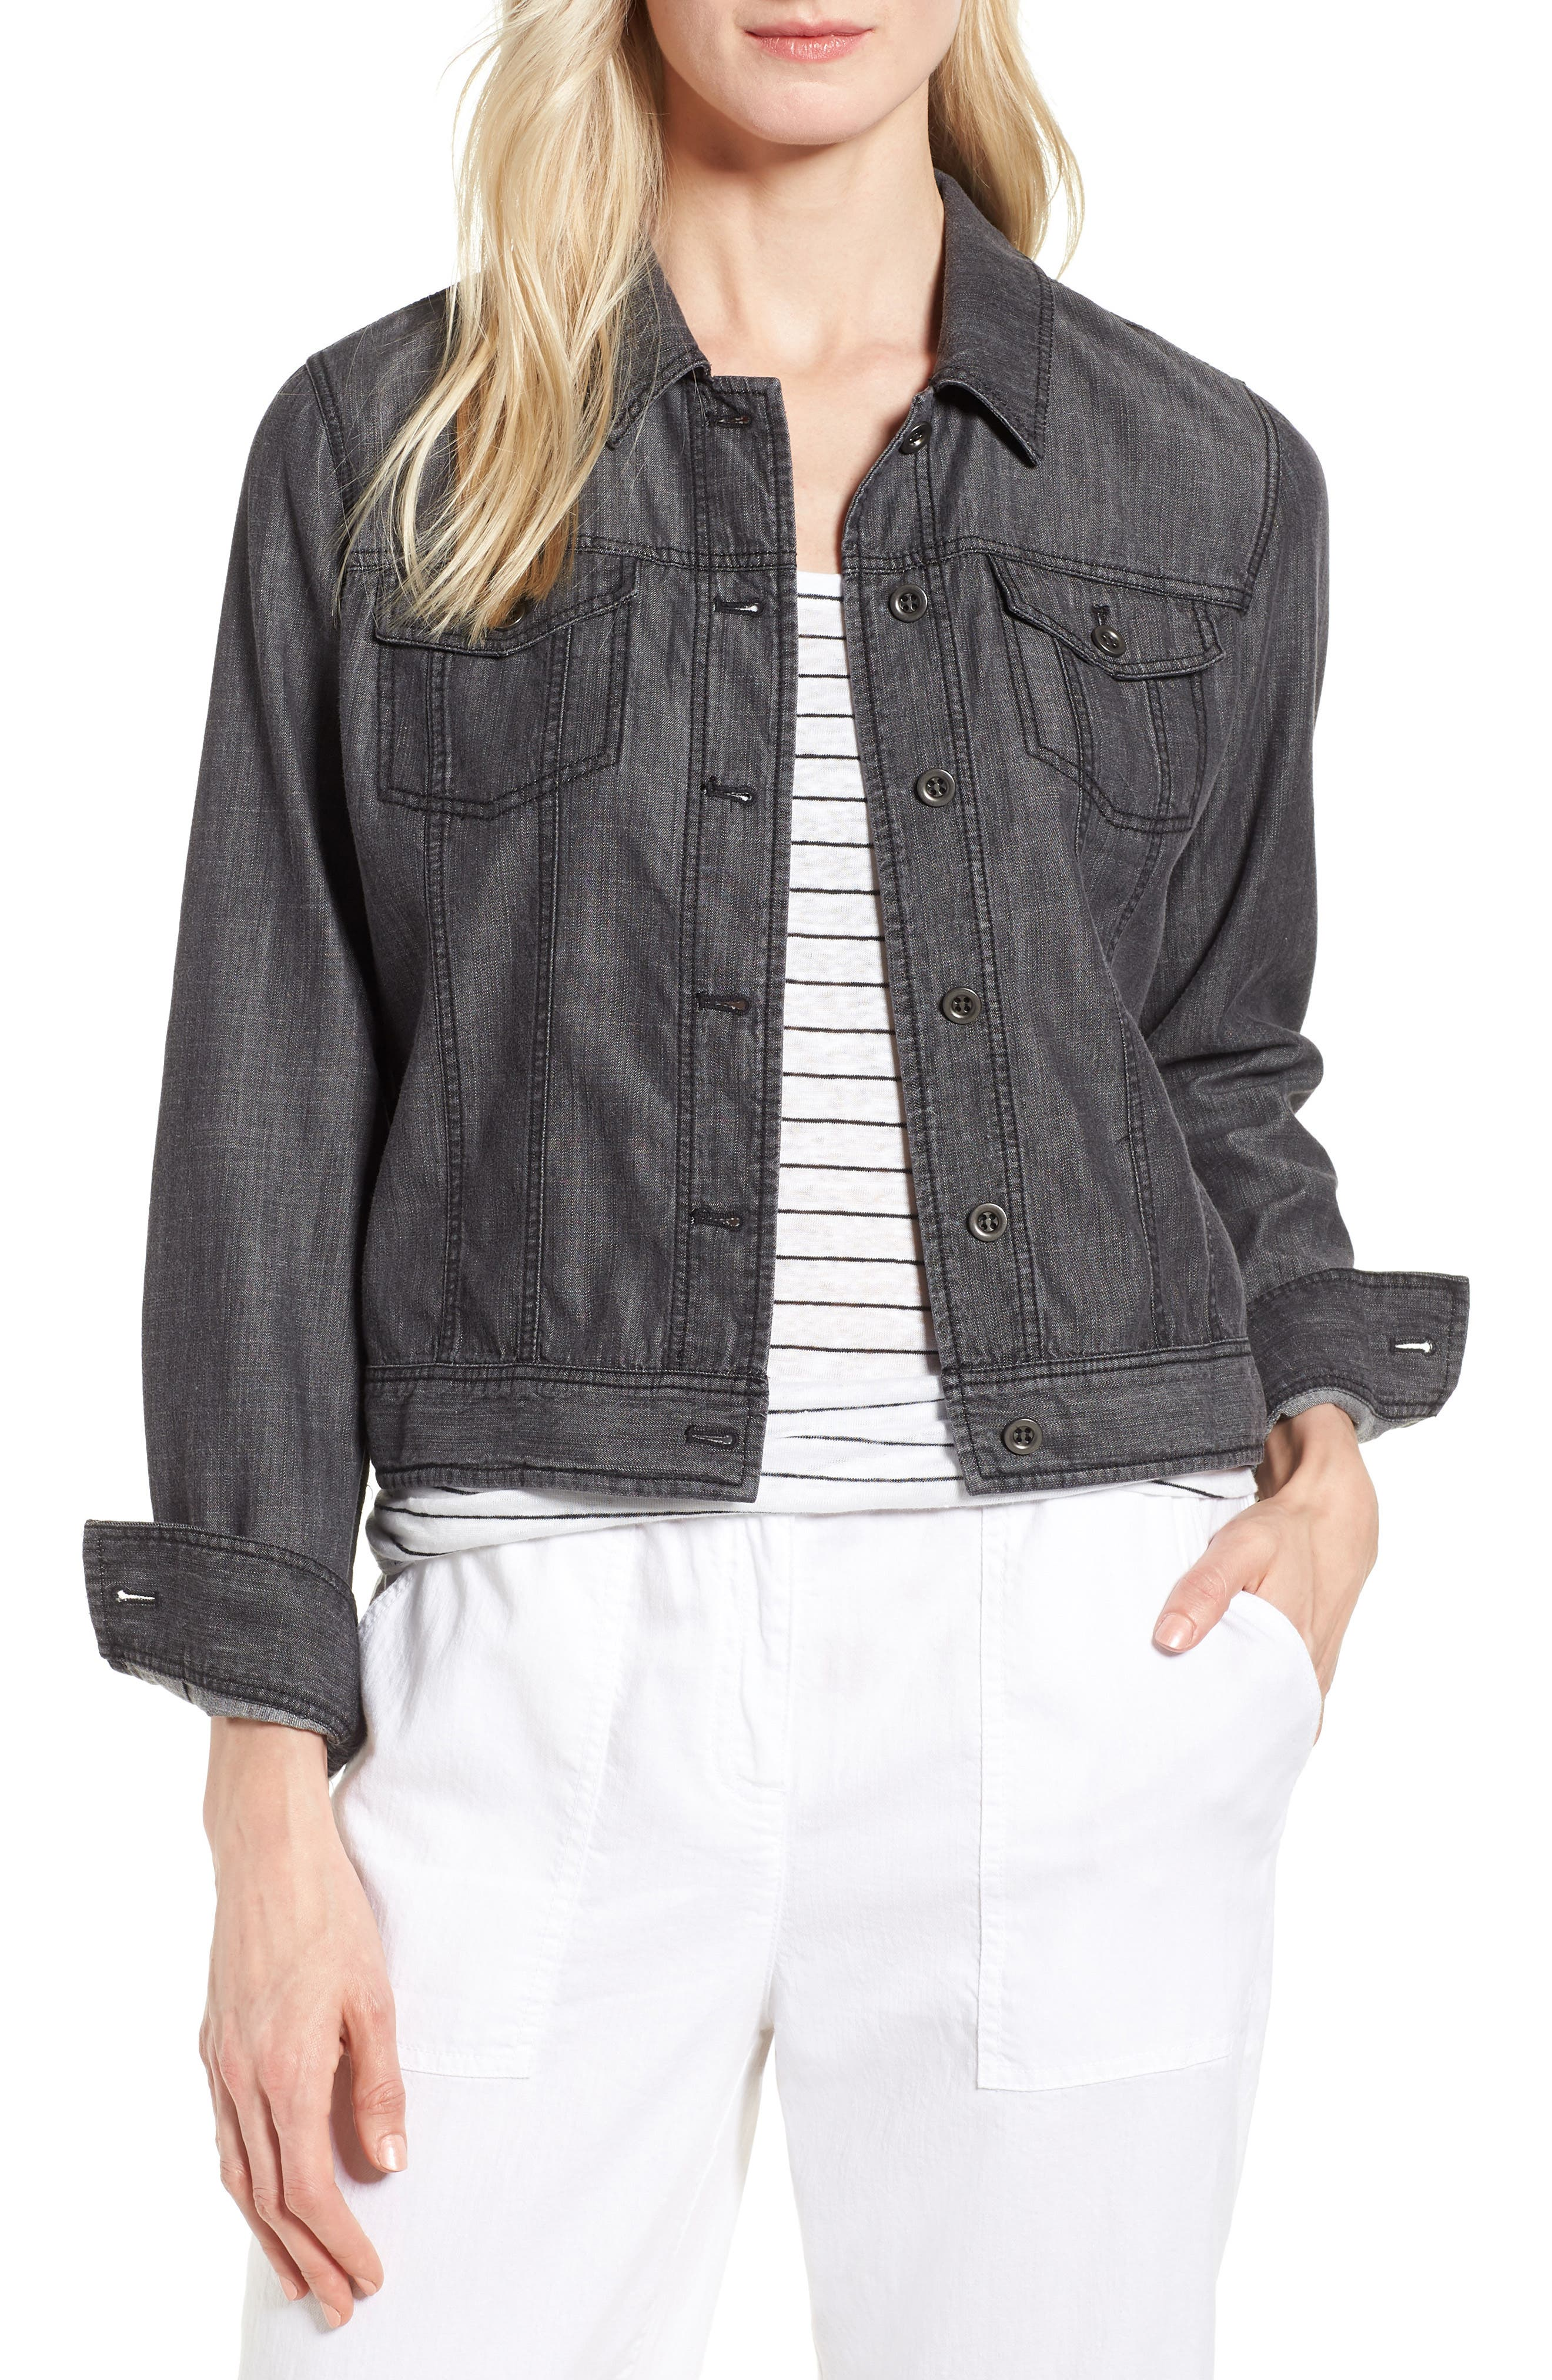 Crop Denim Jacket,                             Main thumbnail 1, color,                             001